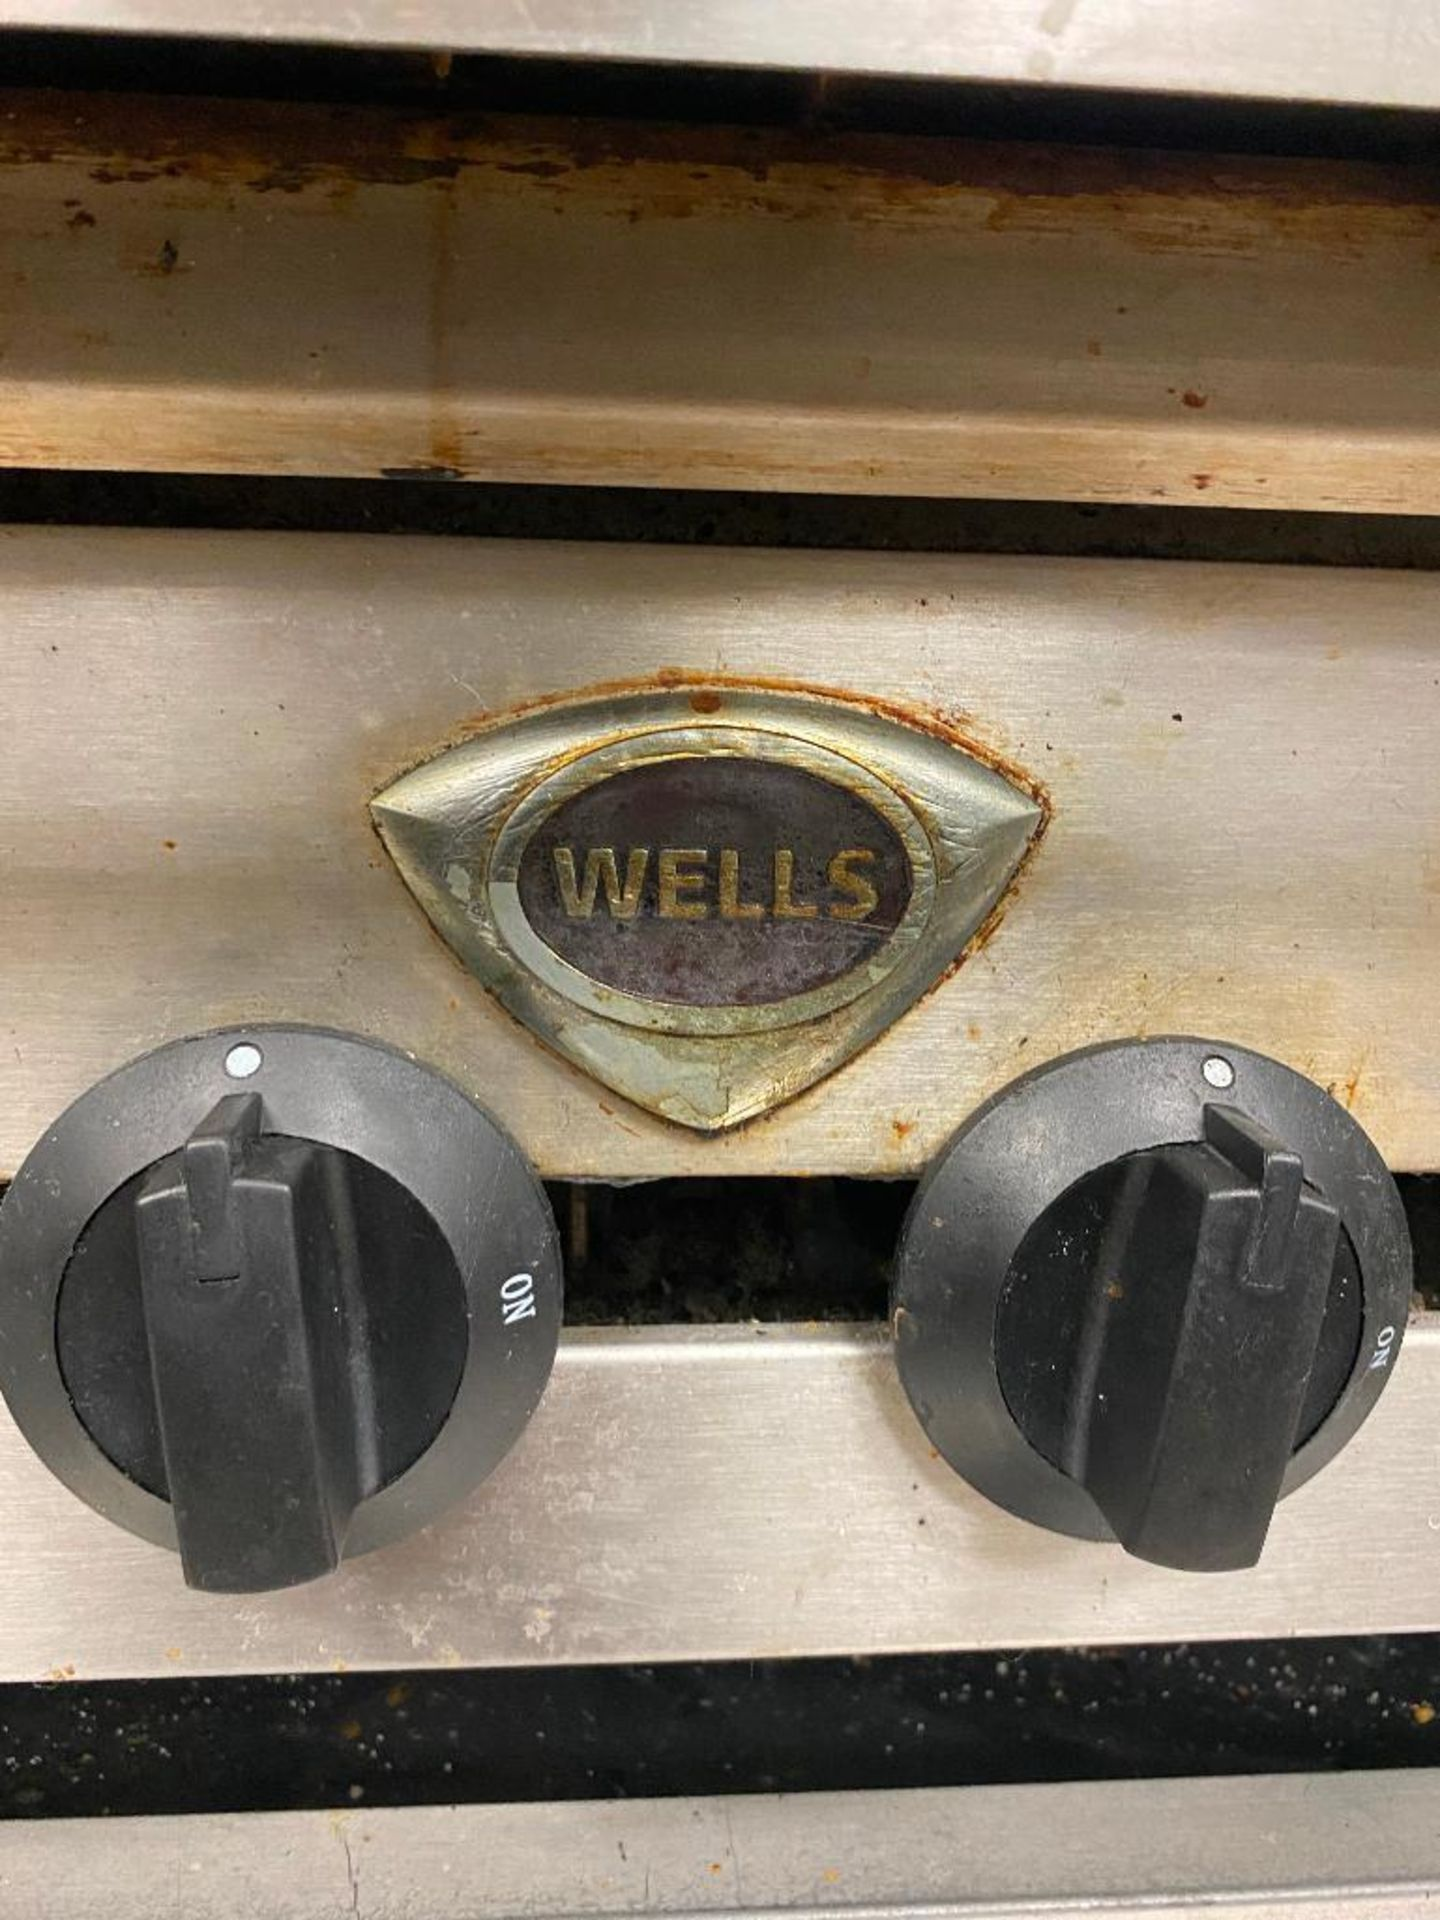 WELLS 6 BURNER CHARBROILER - NOTE: REQUIRES DISCONNECT, PLEASE INSPECT - Image 4 of 4